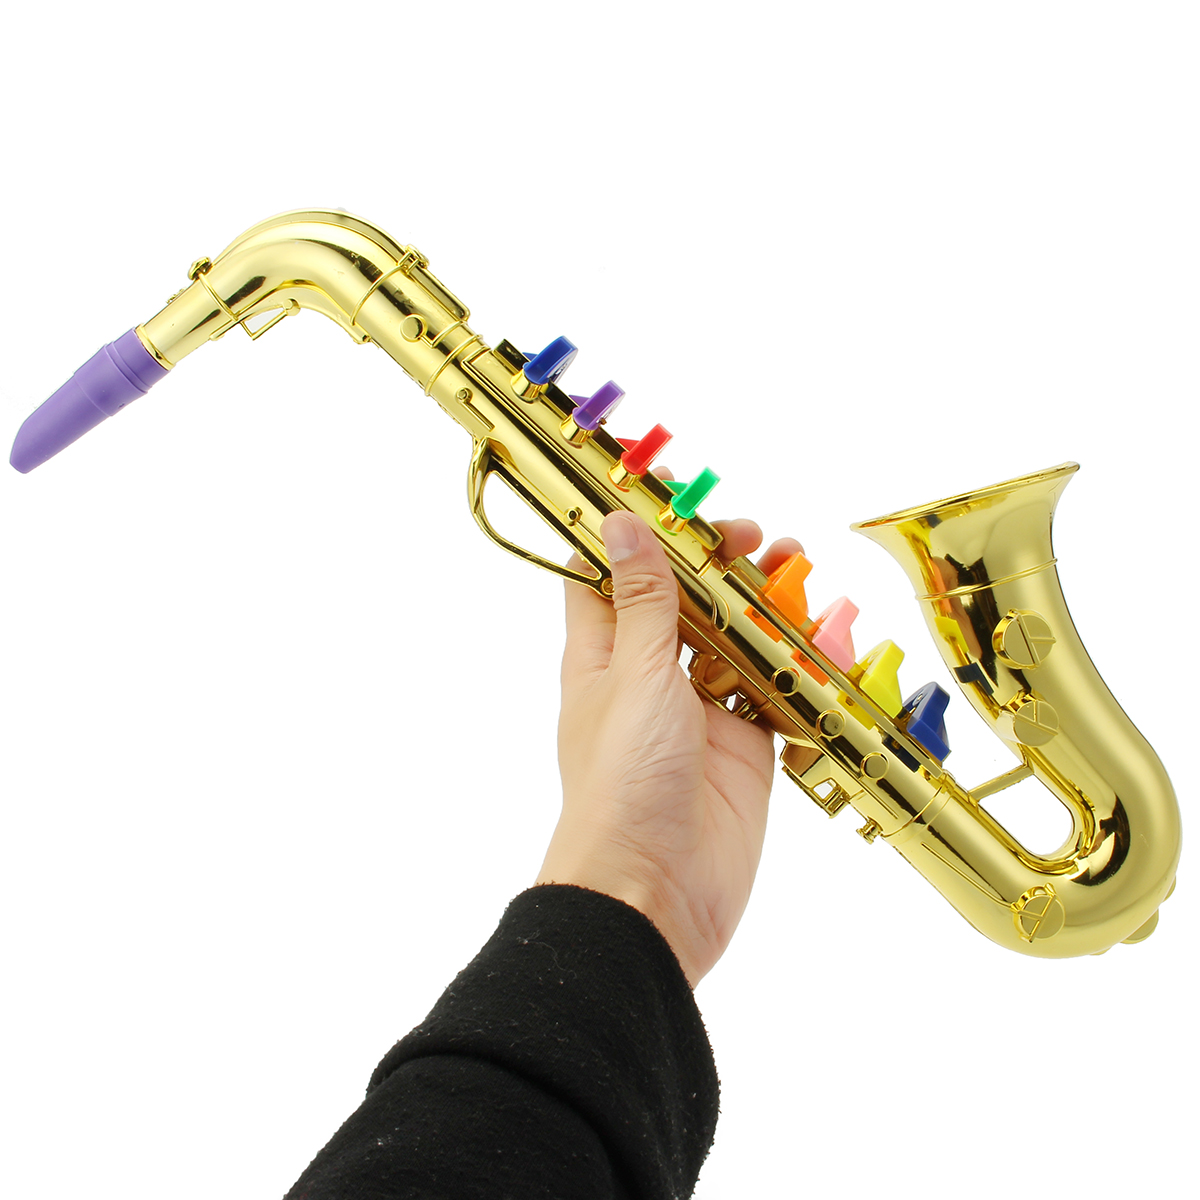 Musical Toy Trumpet : Mini golden silver clarinet trumpet saxophone musical